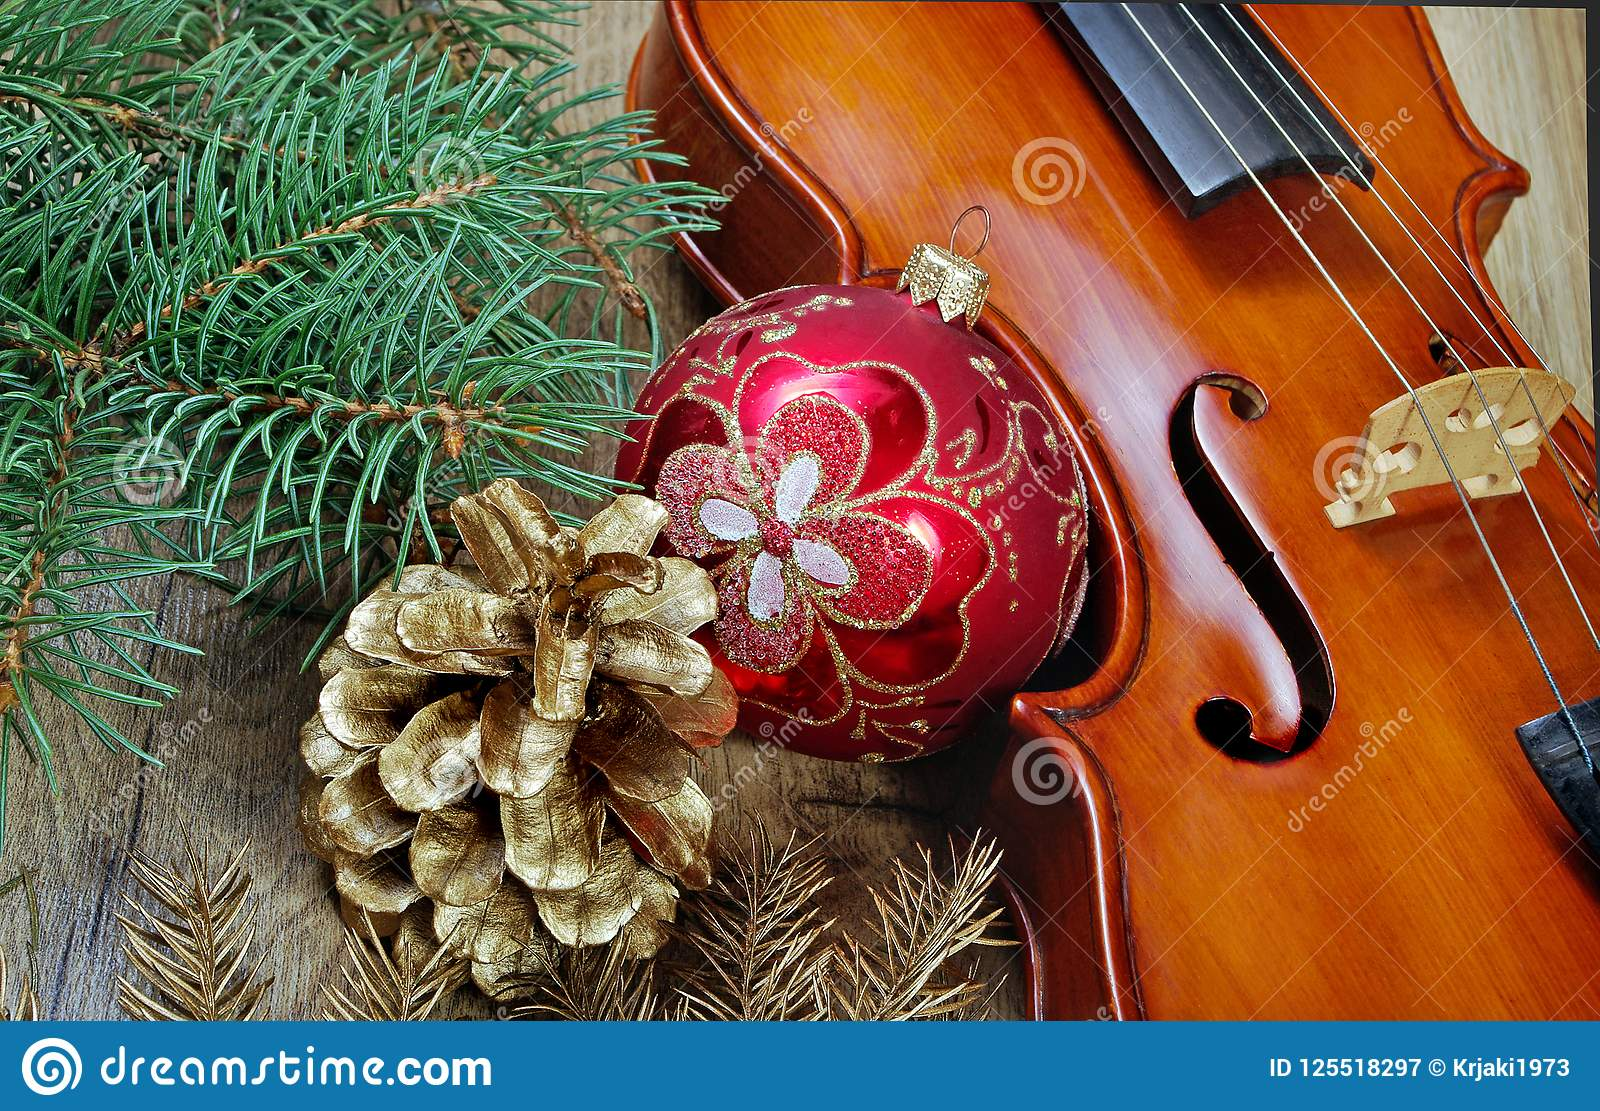 Christmas Violin.New Year Background New Year S Ball Violin Branches Of